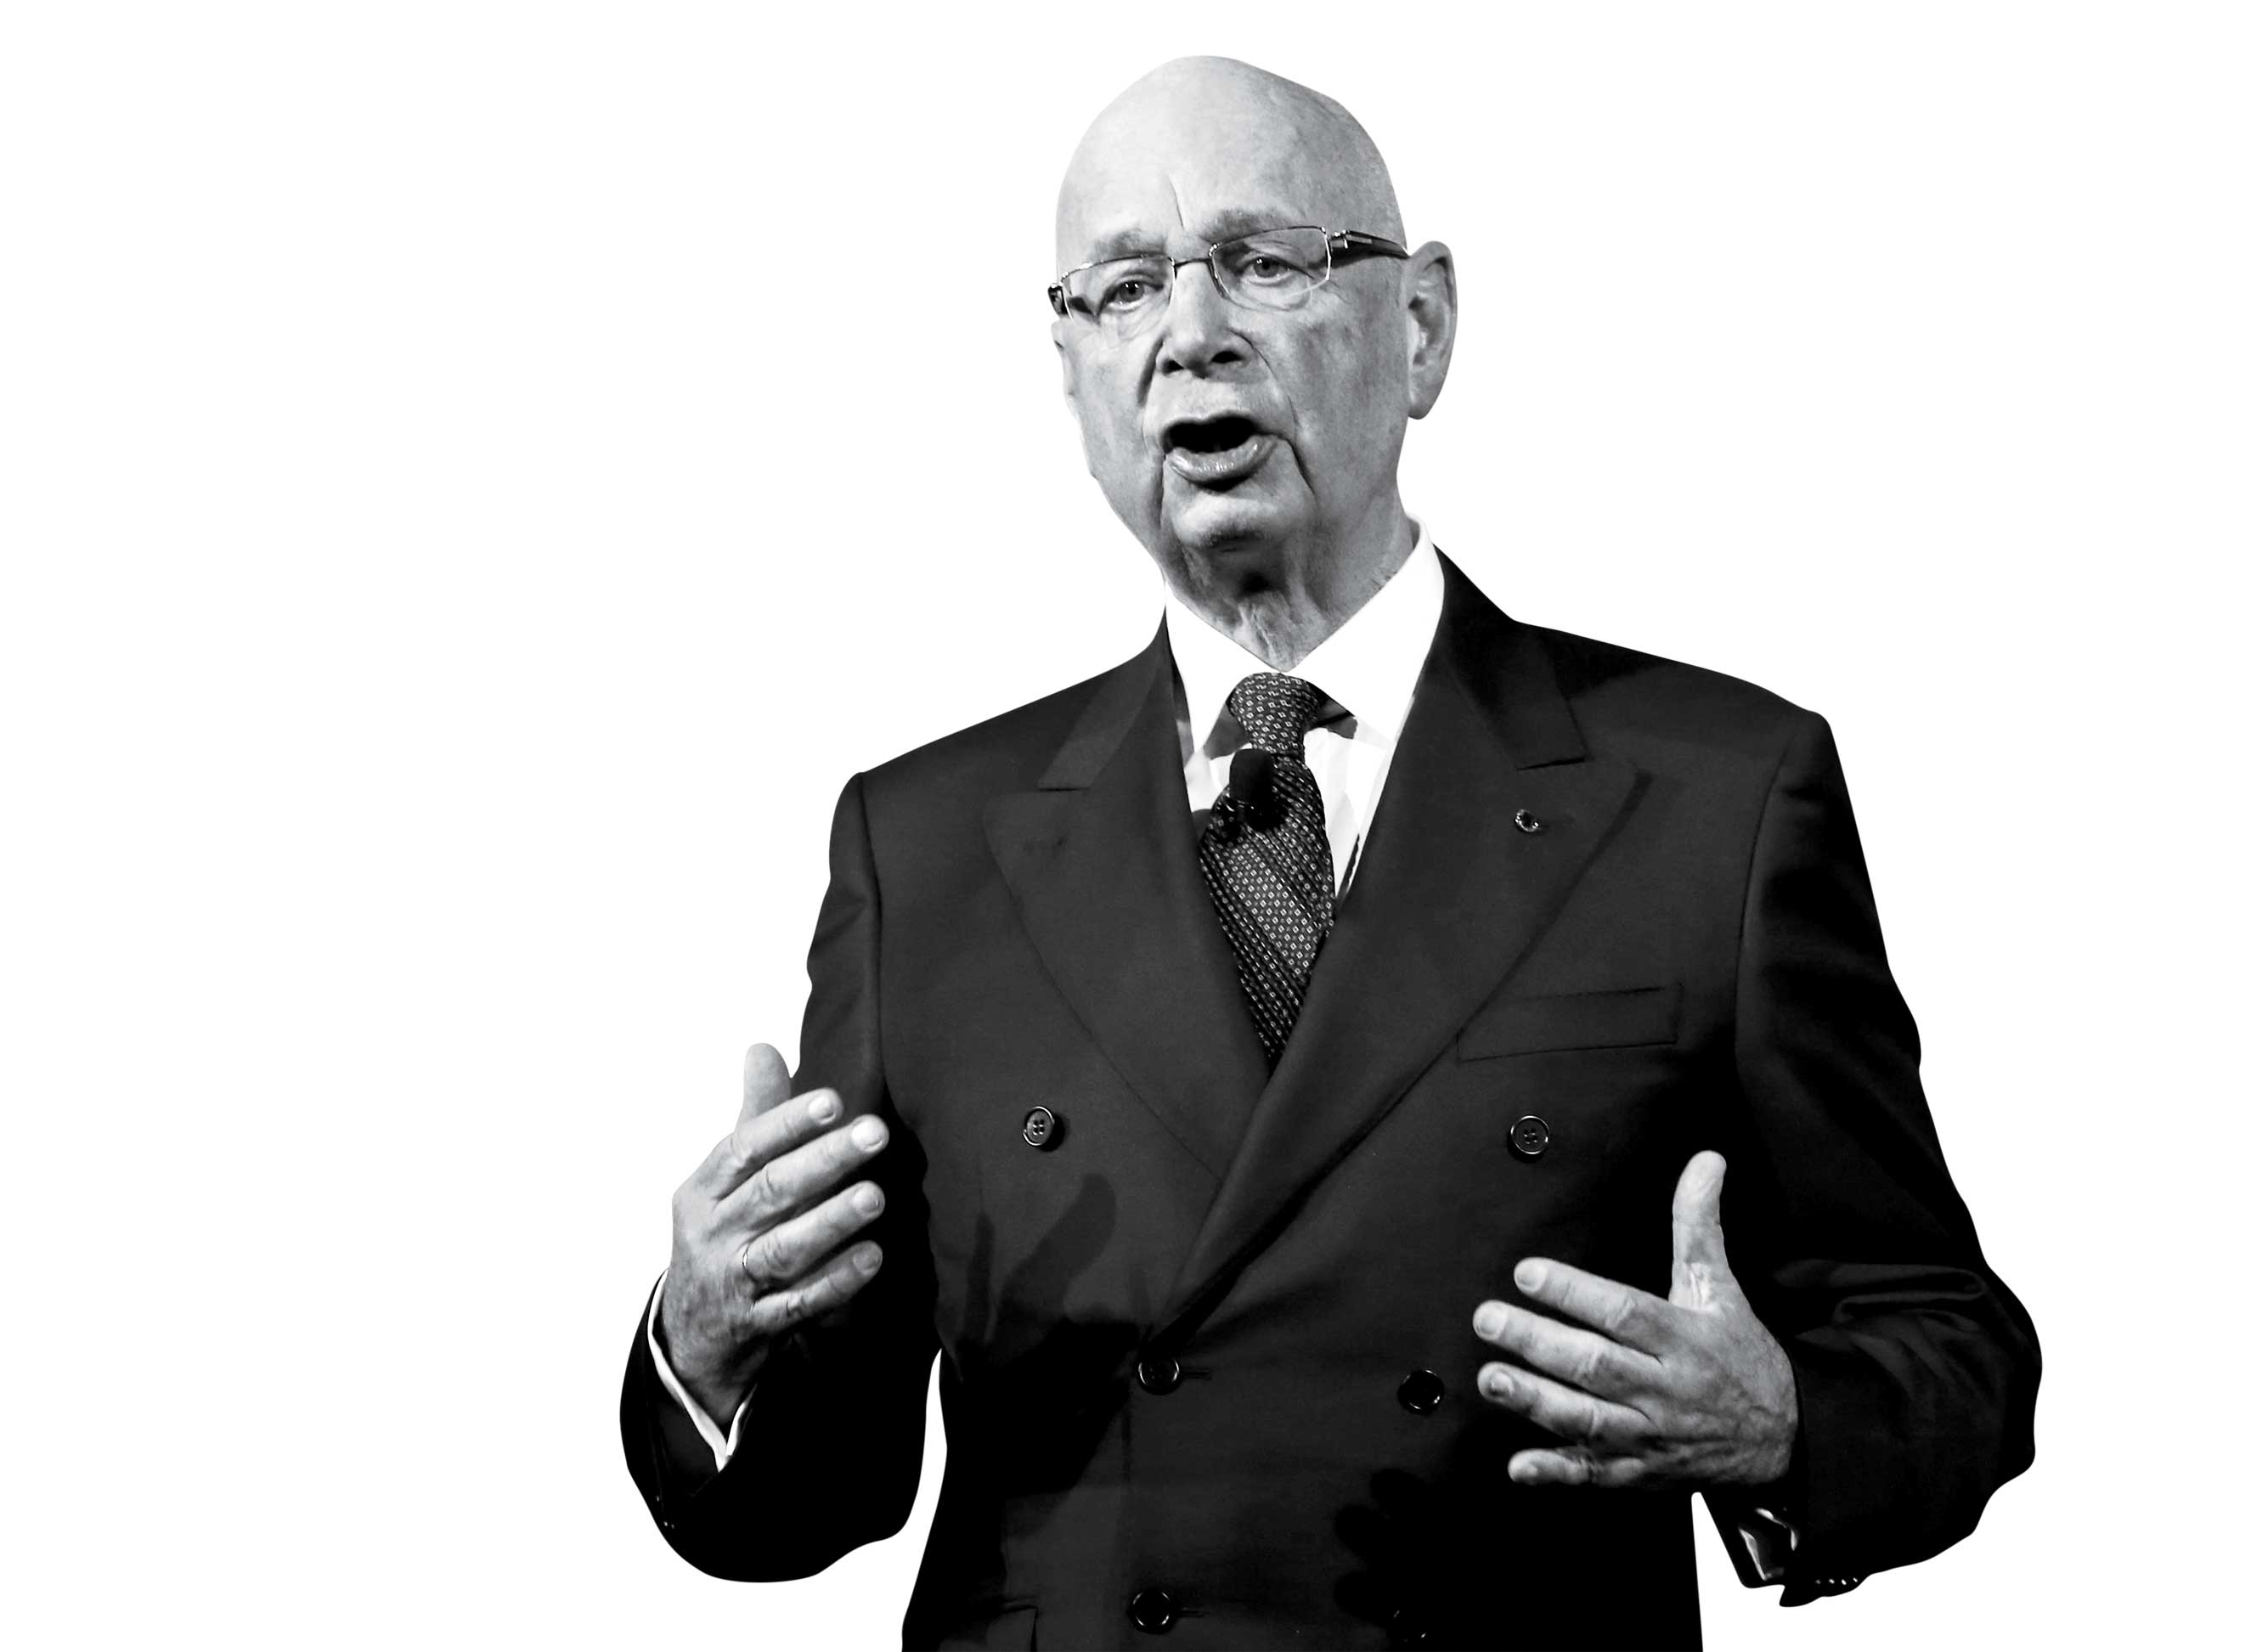 Founder and executive Chairman of the World Economic Forum (WEF) Klaus Schwab speaks ahead of the Crystal Awards ceremony in the Swiss mountain resort of Davos January 20, 2015.